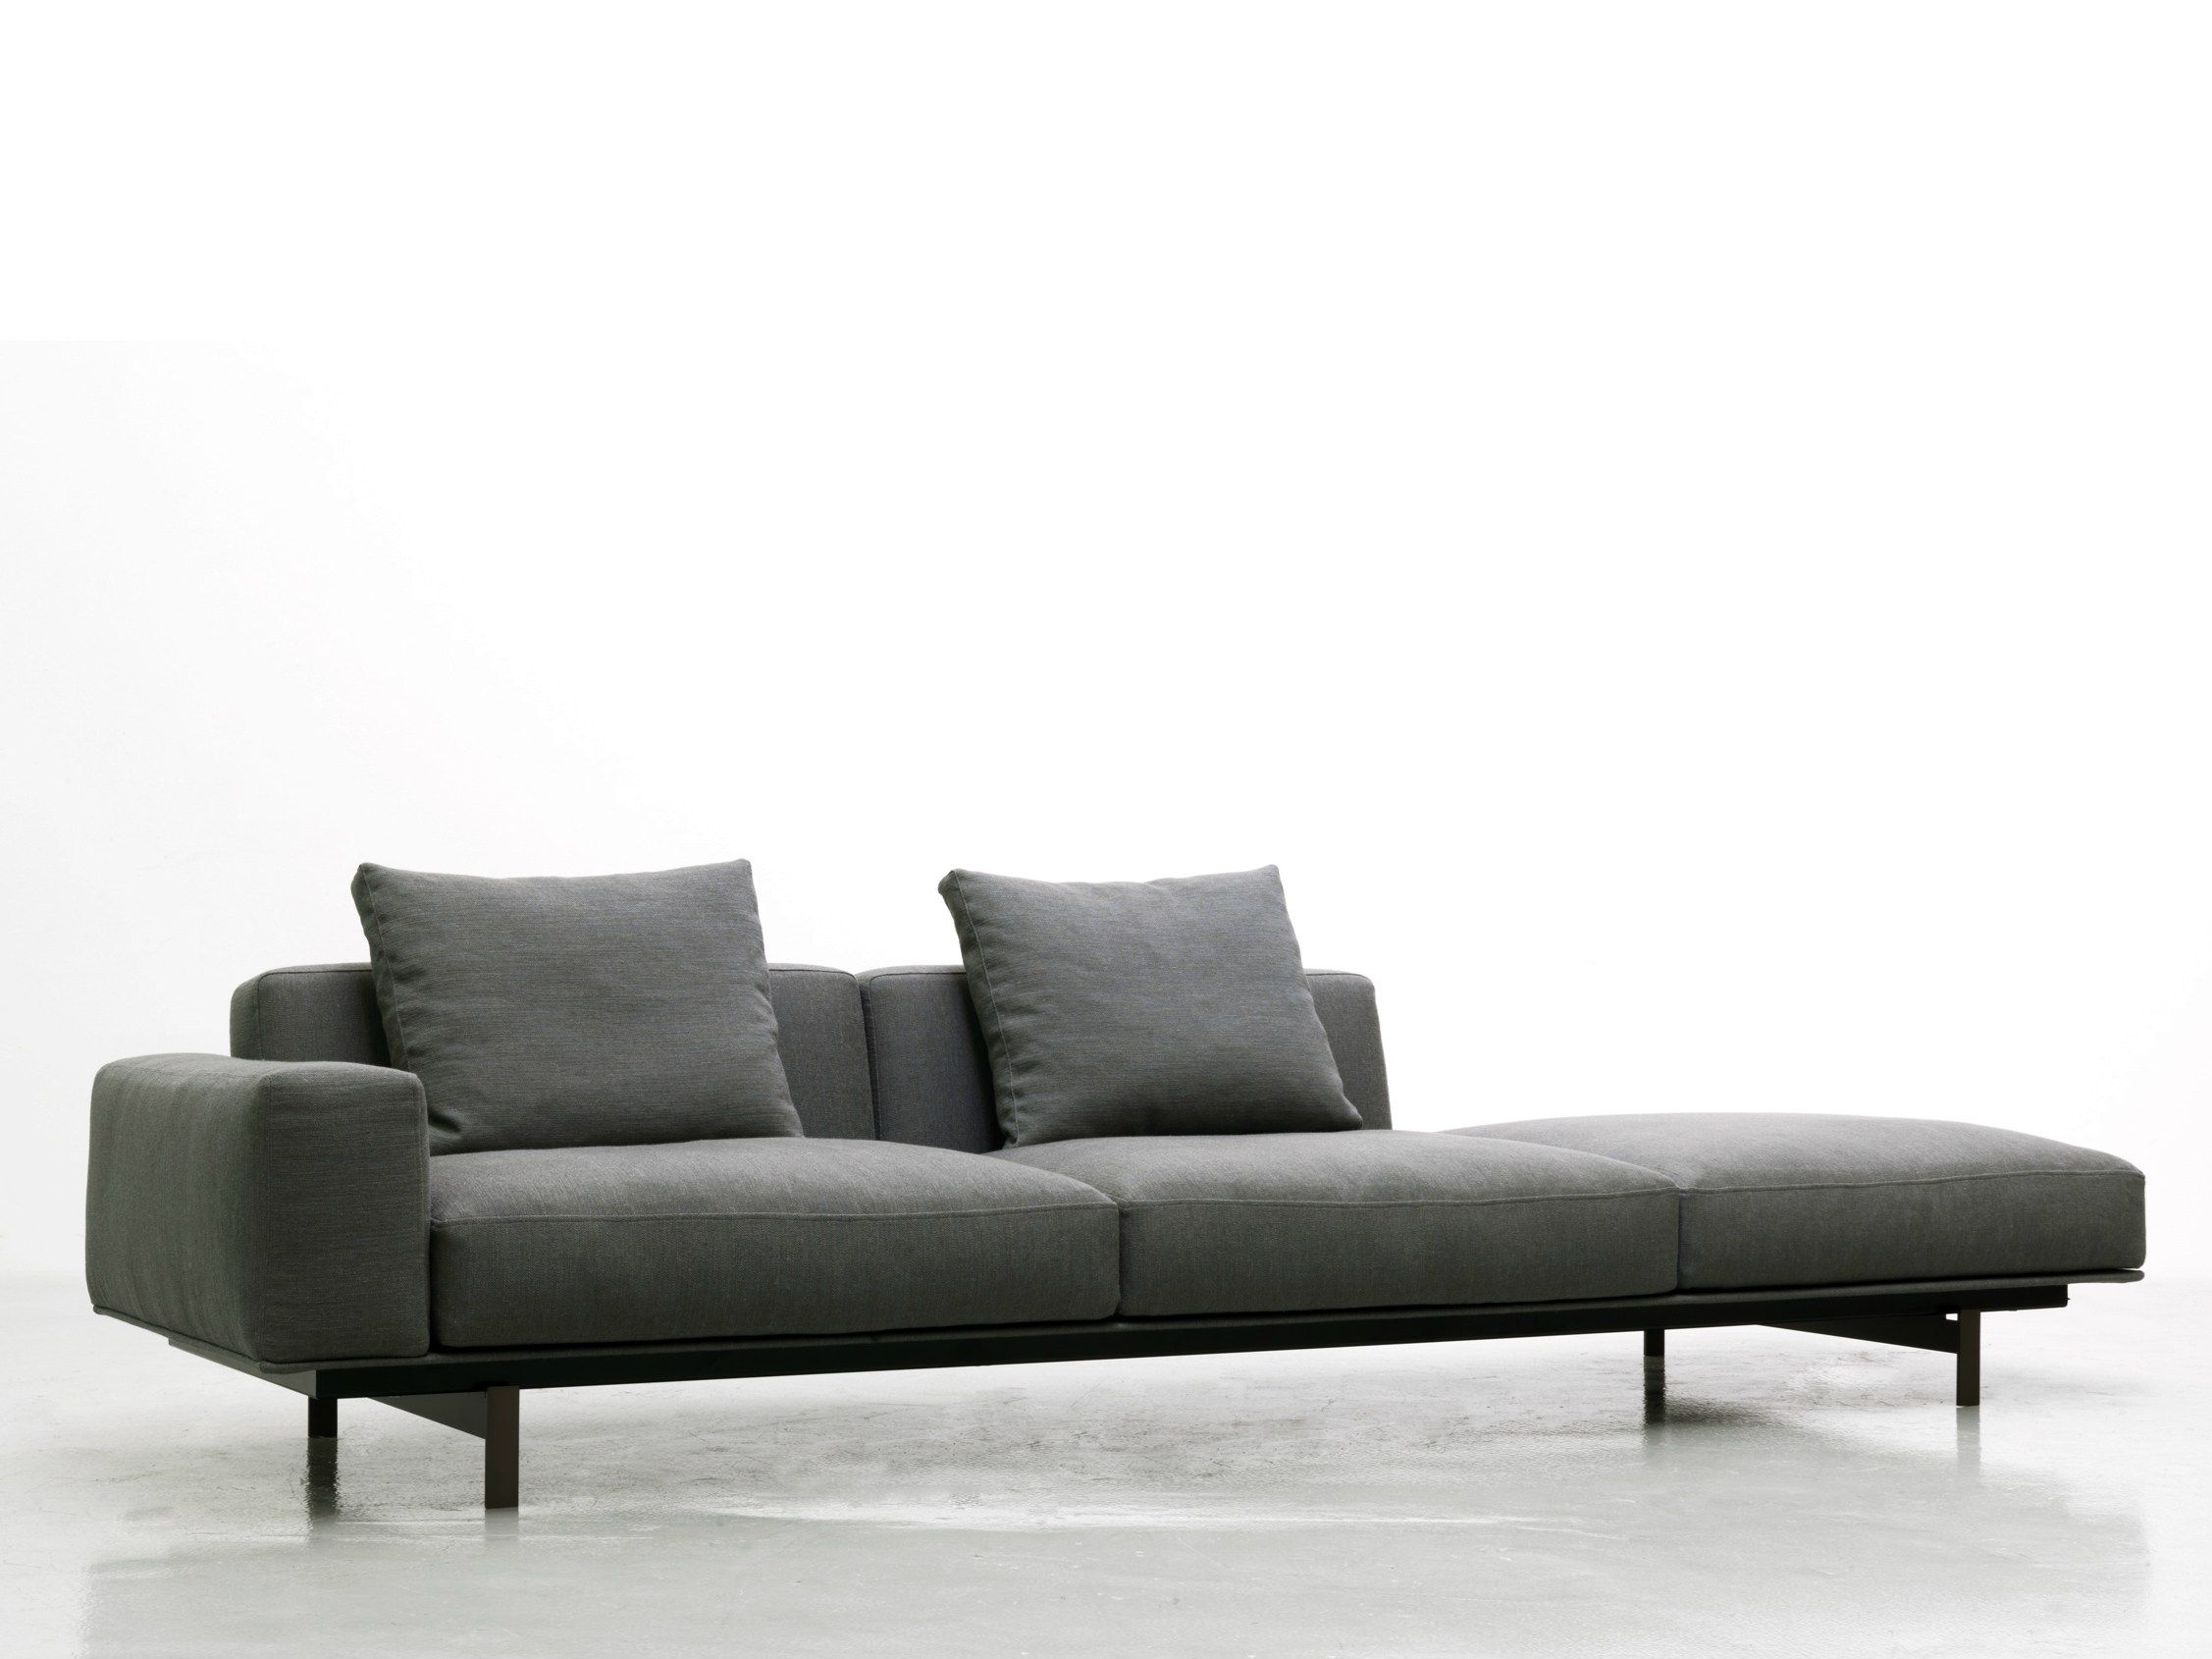 yard sofa by francesco rota for lema | contemporary style, style ... - Angolo Chaise Whistler Grigio